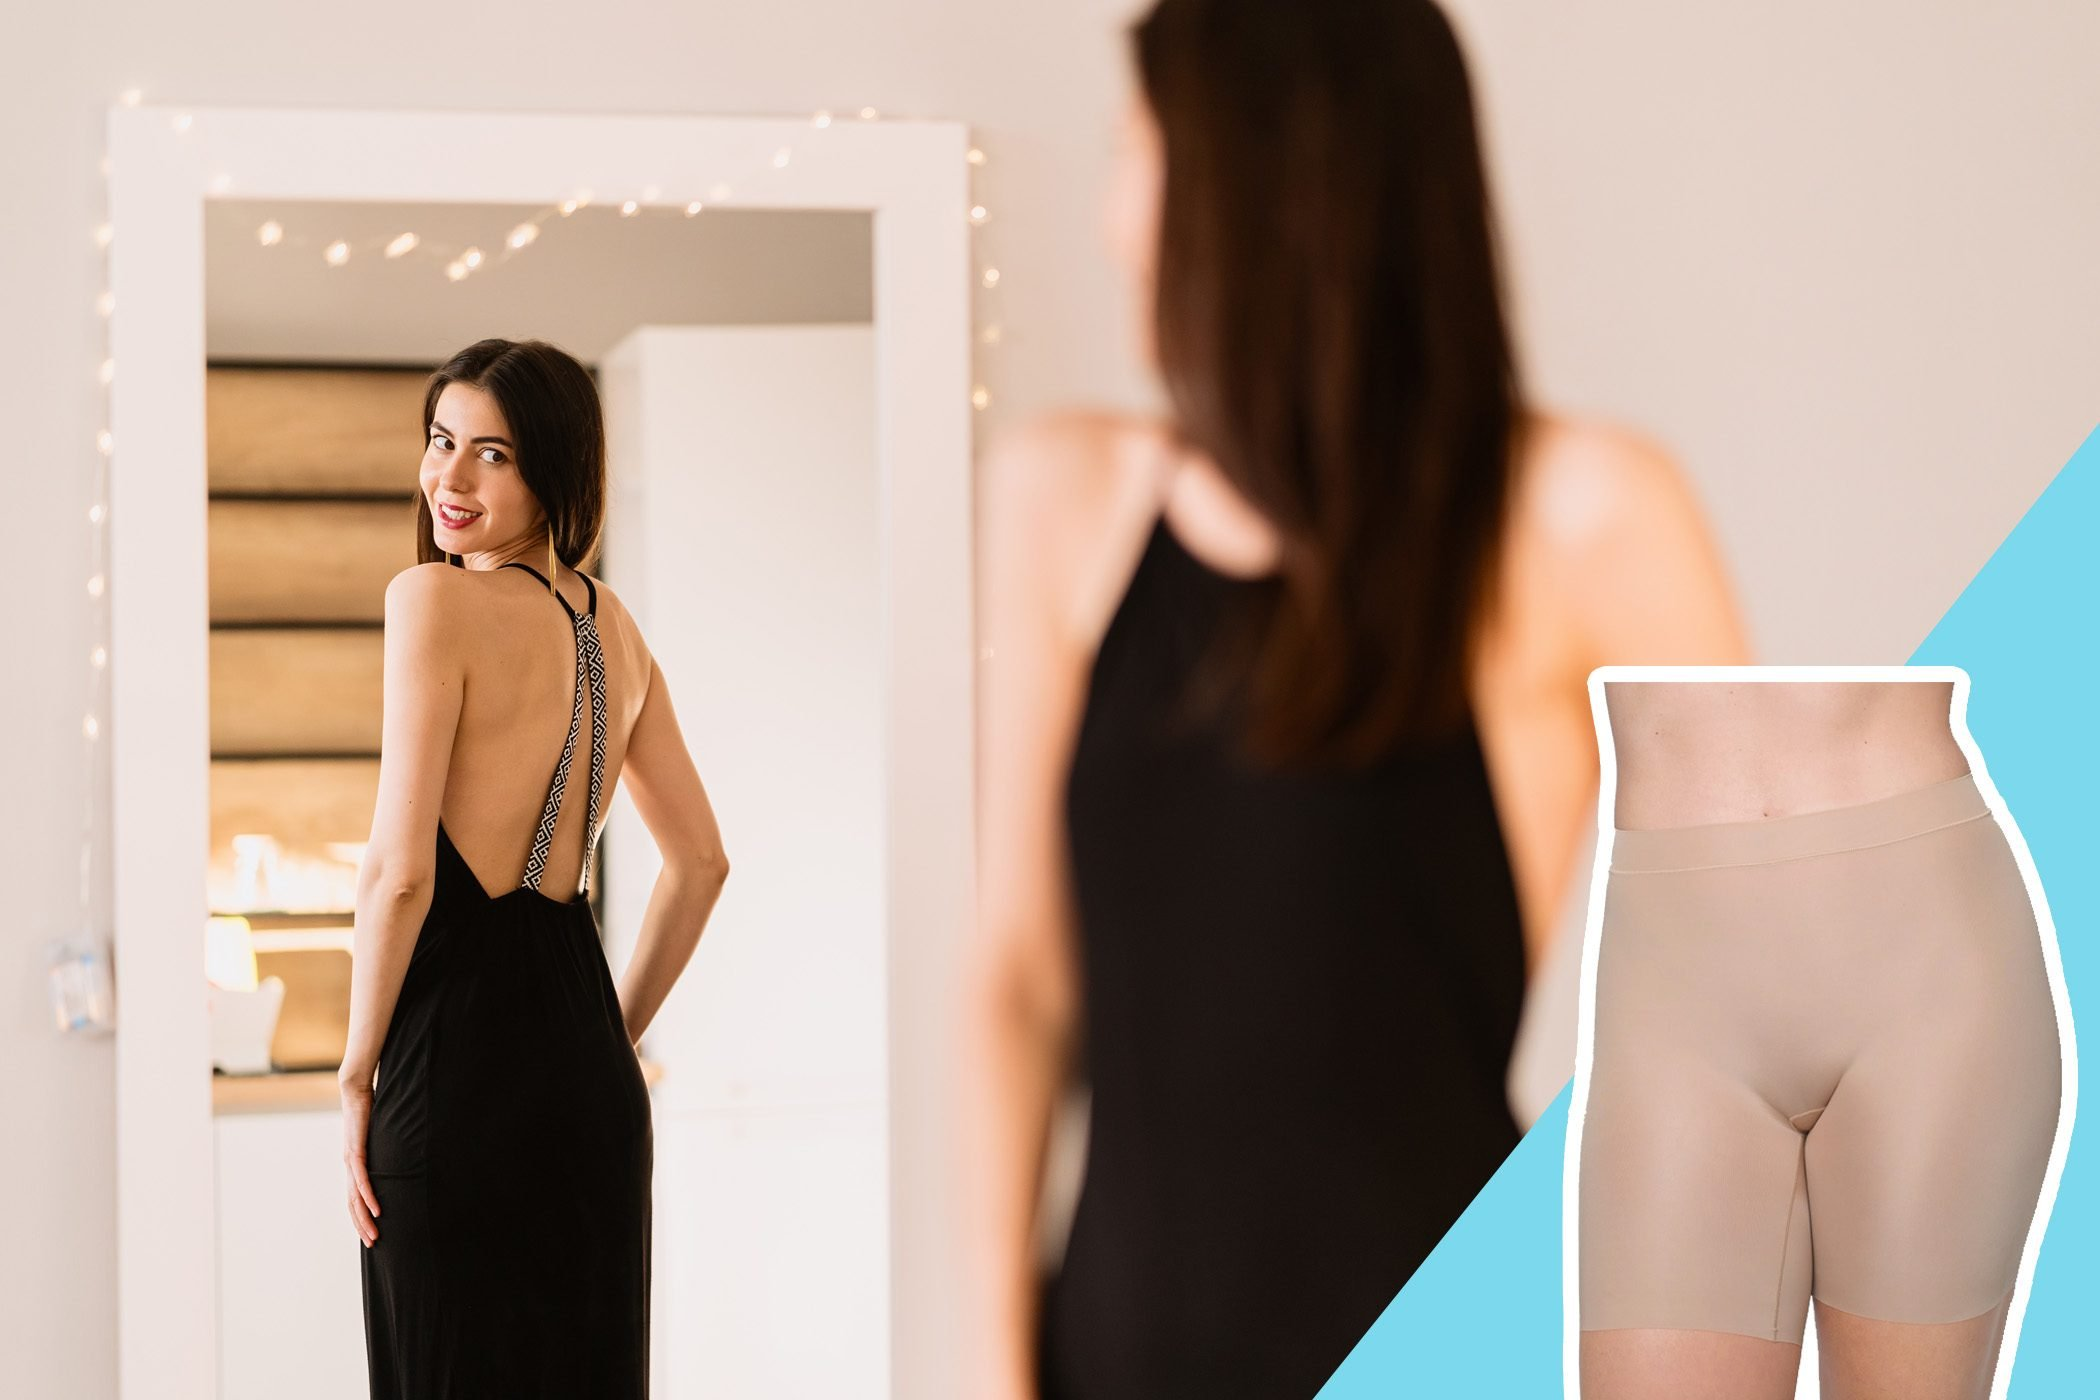 Slide 8 of 16: $26.00 Shop Now It turns out that the most important layers when making an outfit seem expensive are the bottom and top ones. Underpinnings and coats both pave the way to the most put-together looks. Vajda tells her clients to invest in good, trustworthy shapewear they'll feel comfortable wearing beneath their favorite pants, dresses, and skirts. The goal is to present a smooth silhouette and highlight your body's natural shape. These affordable Soma Smoothing Shorts will work perfectly under most of your favorite looks. You should also read up on the best underwear to flatter your butt shape.